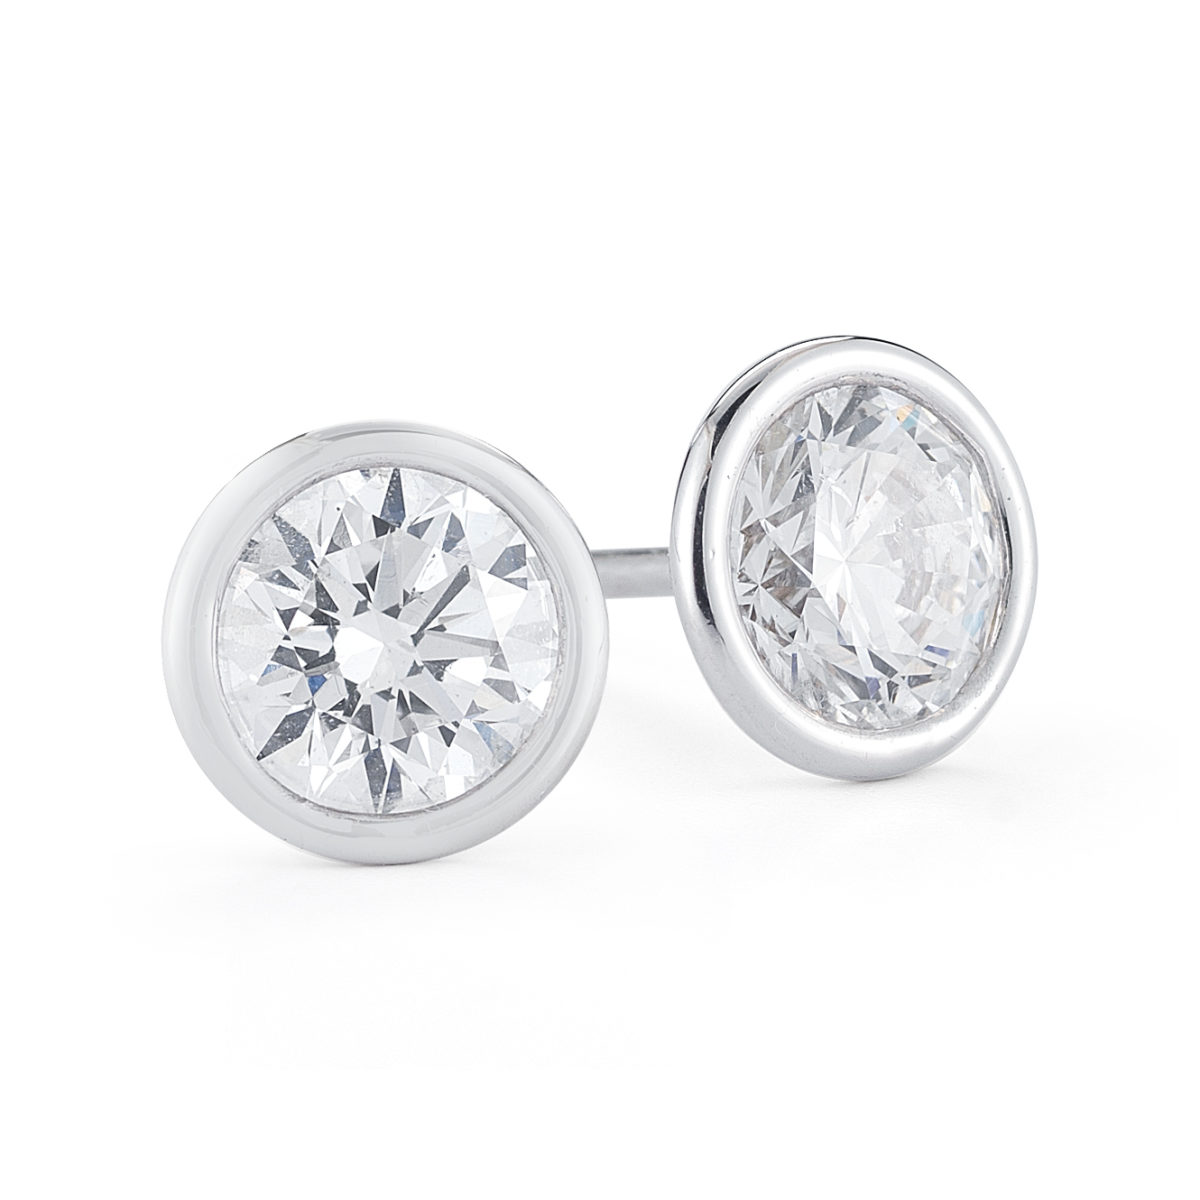 set s eve stud mens cz bling bezel addiction earrings